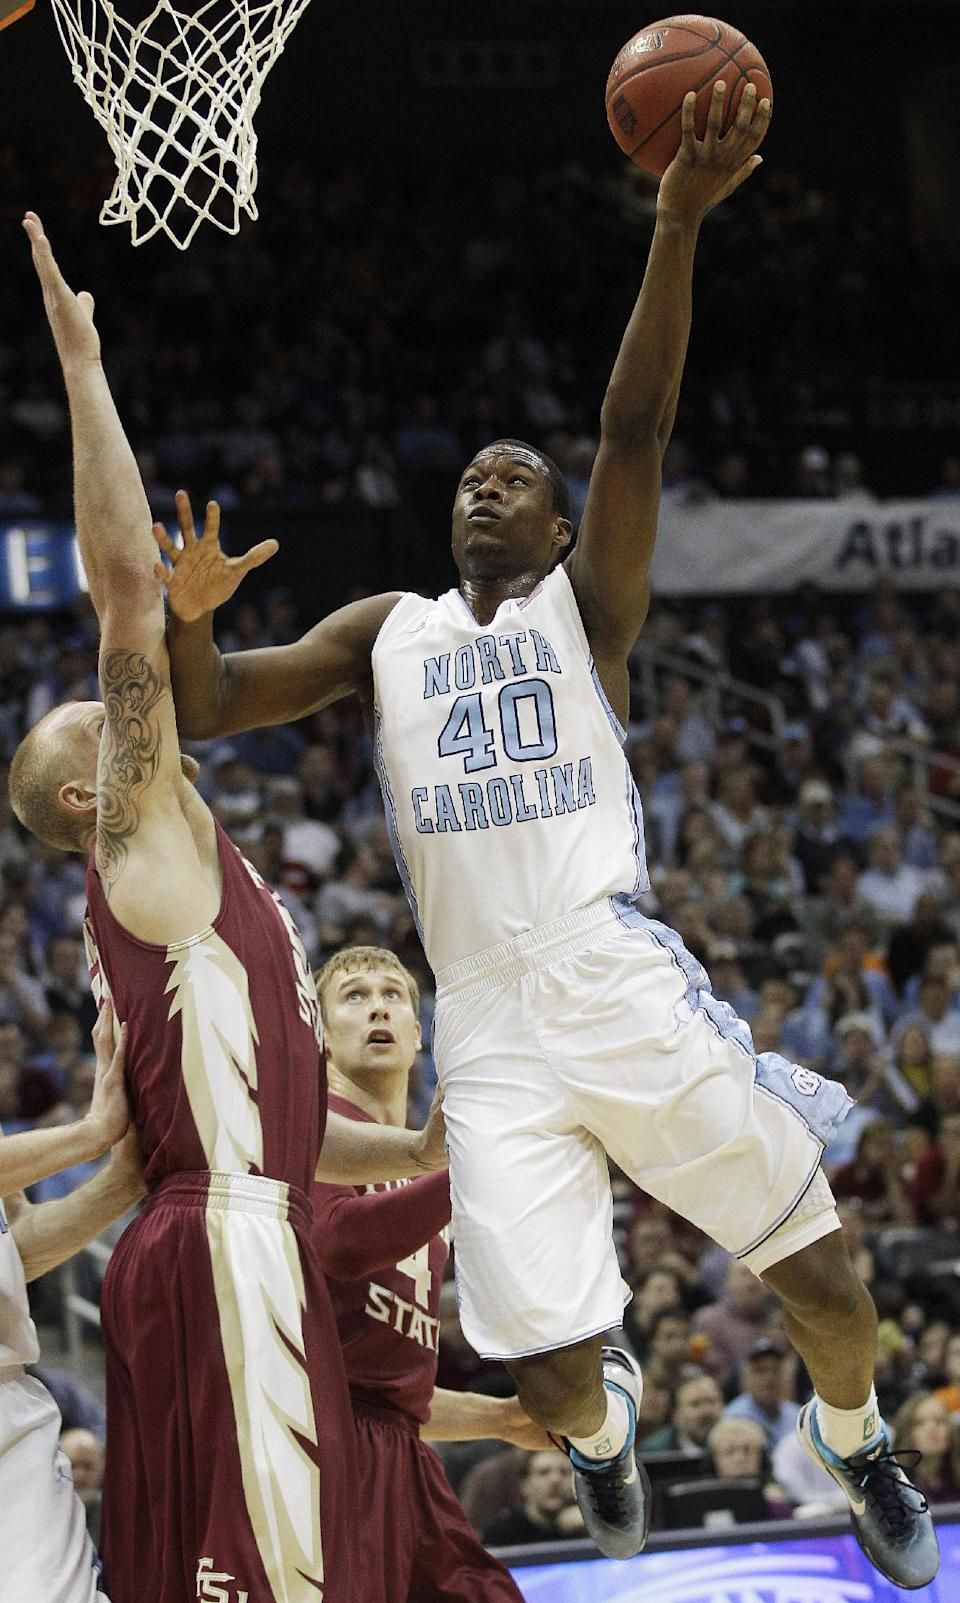 North Carolina Tar Heels forward Harrison Barnes (40) shoots over Florida State center Jon Kreft (50) during the first half of an NCAA college basketball game in the finals of the Atlantic Coast Conference tournament,  Sunday, March 11, 2012, in Atlanta. (AP Photo/Chuck Burton)